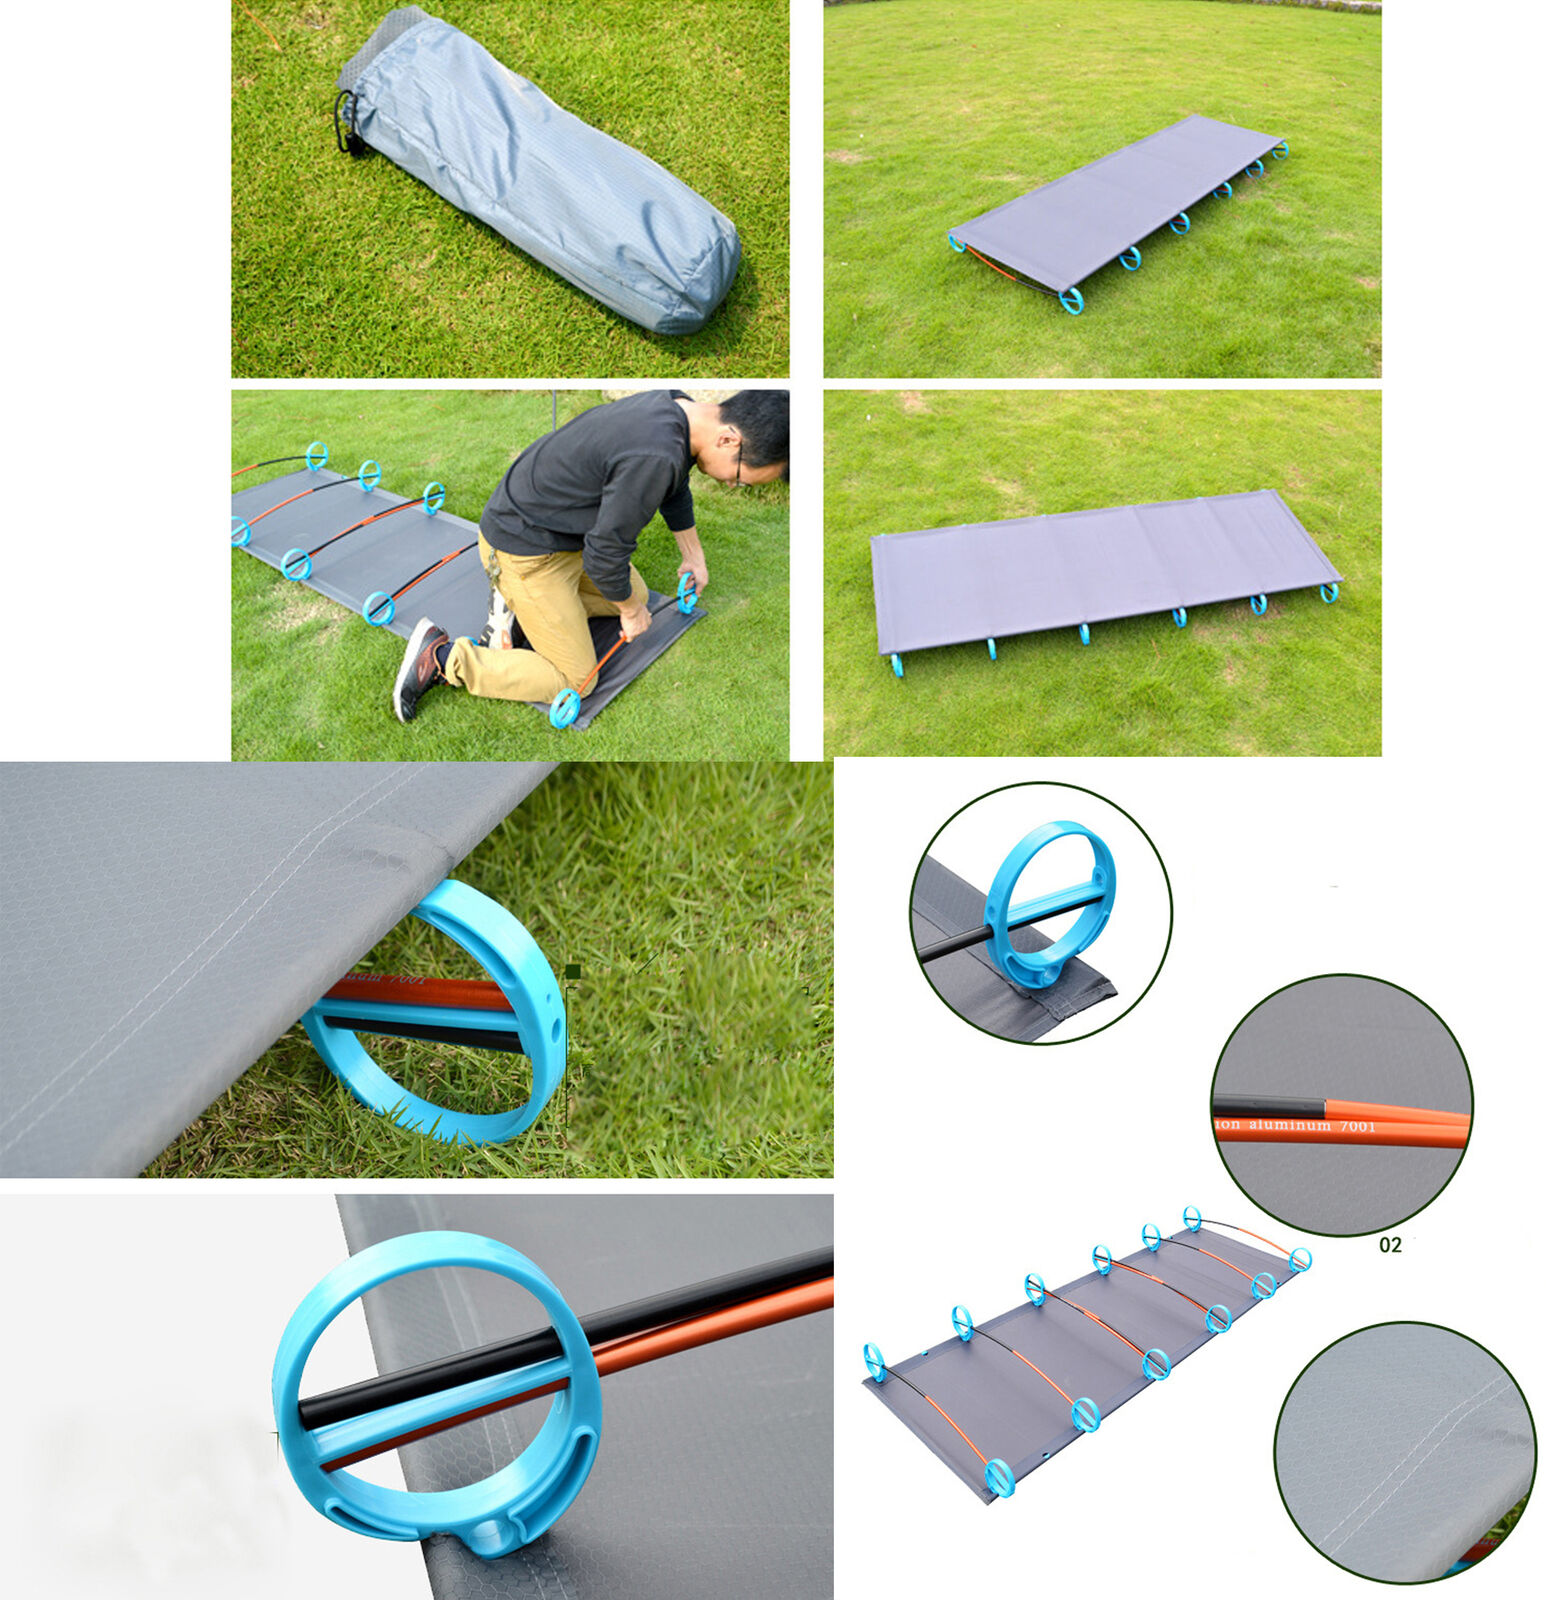 Outdoor Portable Folding Cot Ultralight Hiking Sleep Bed